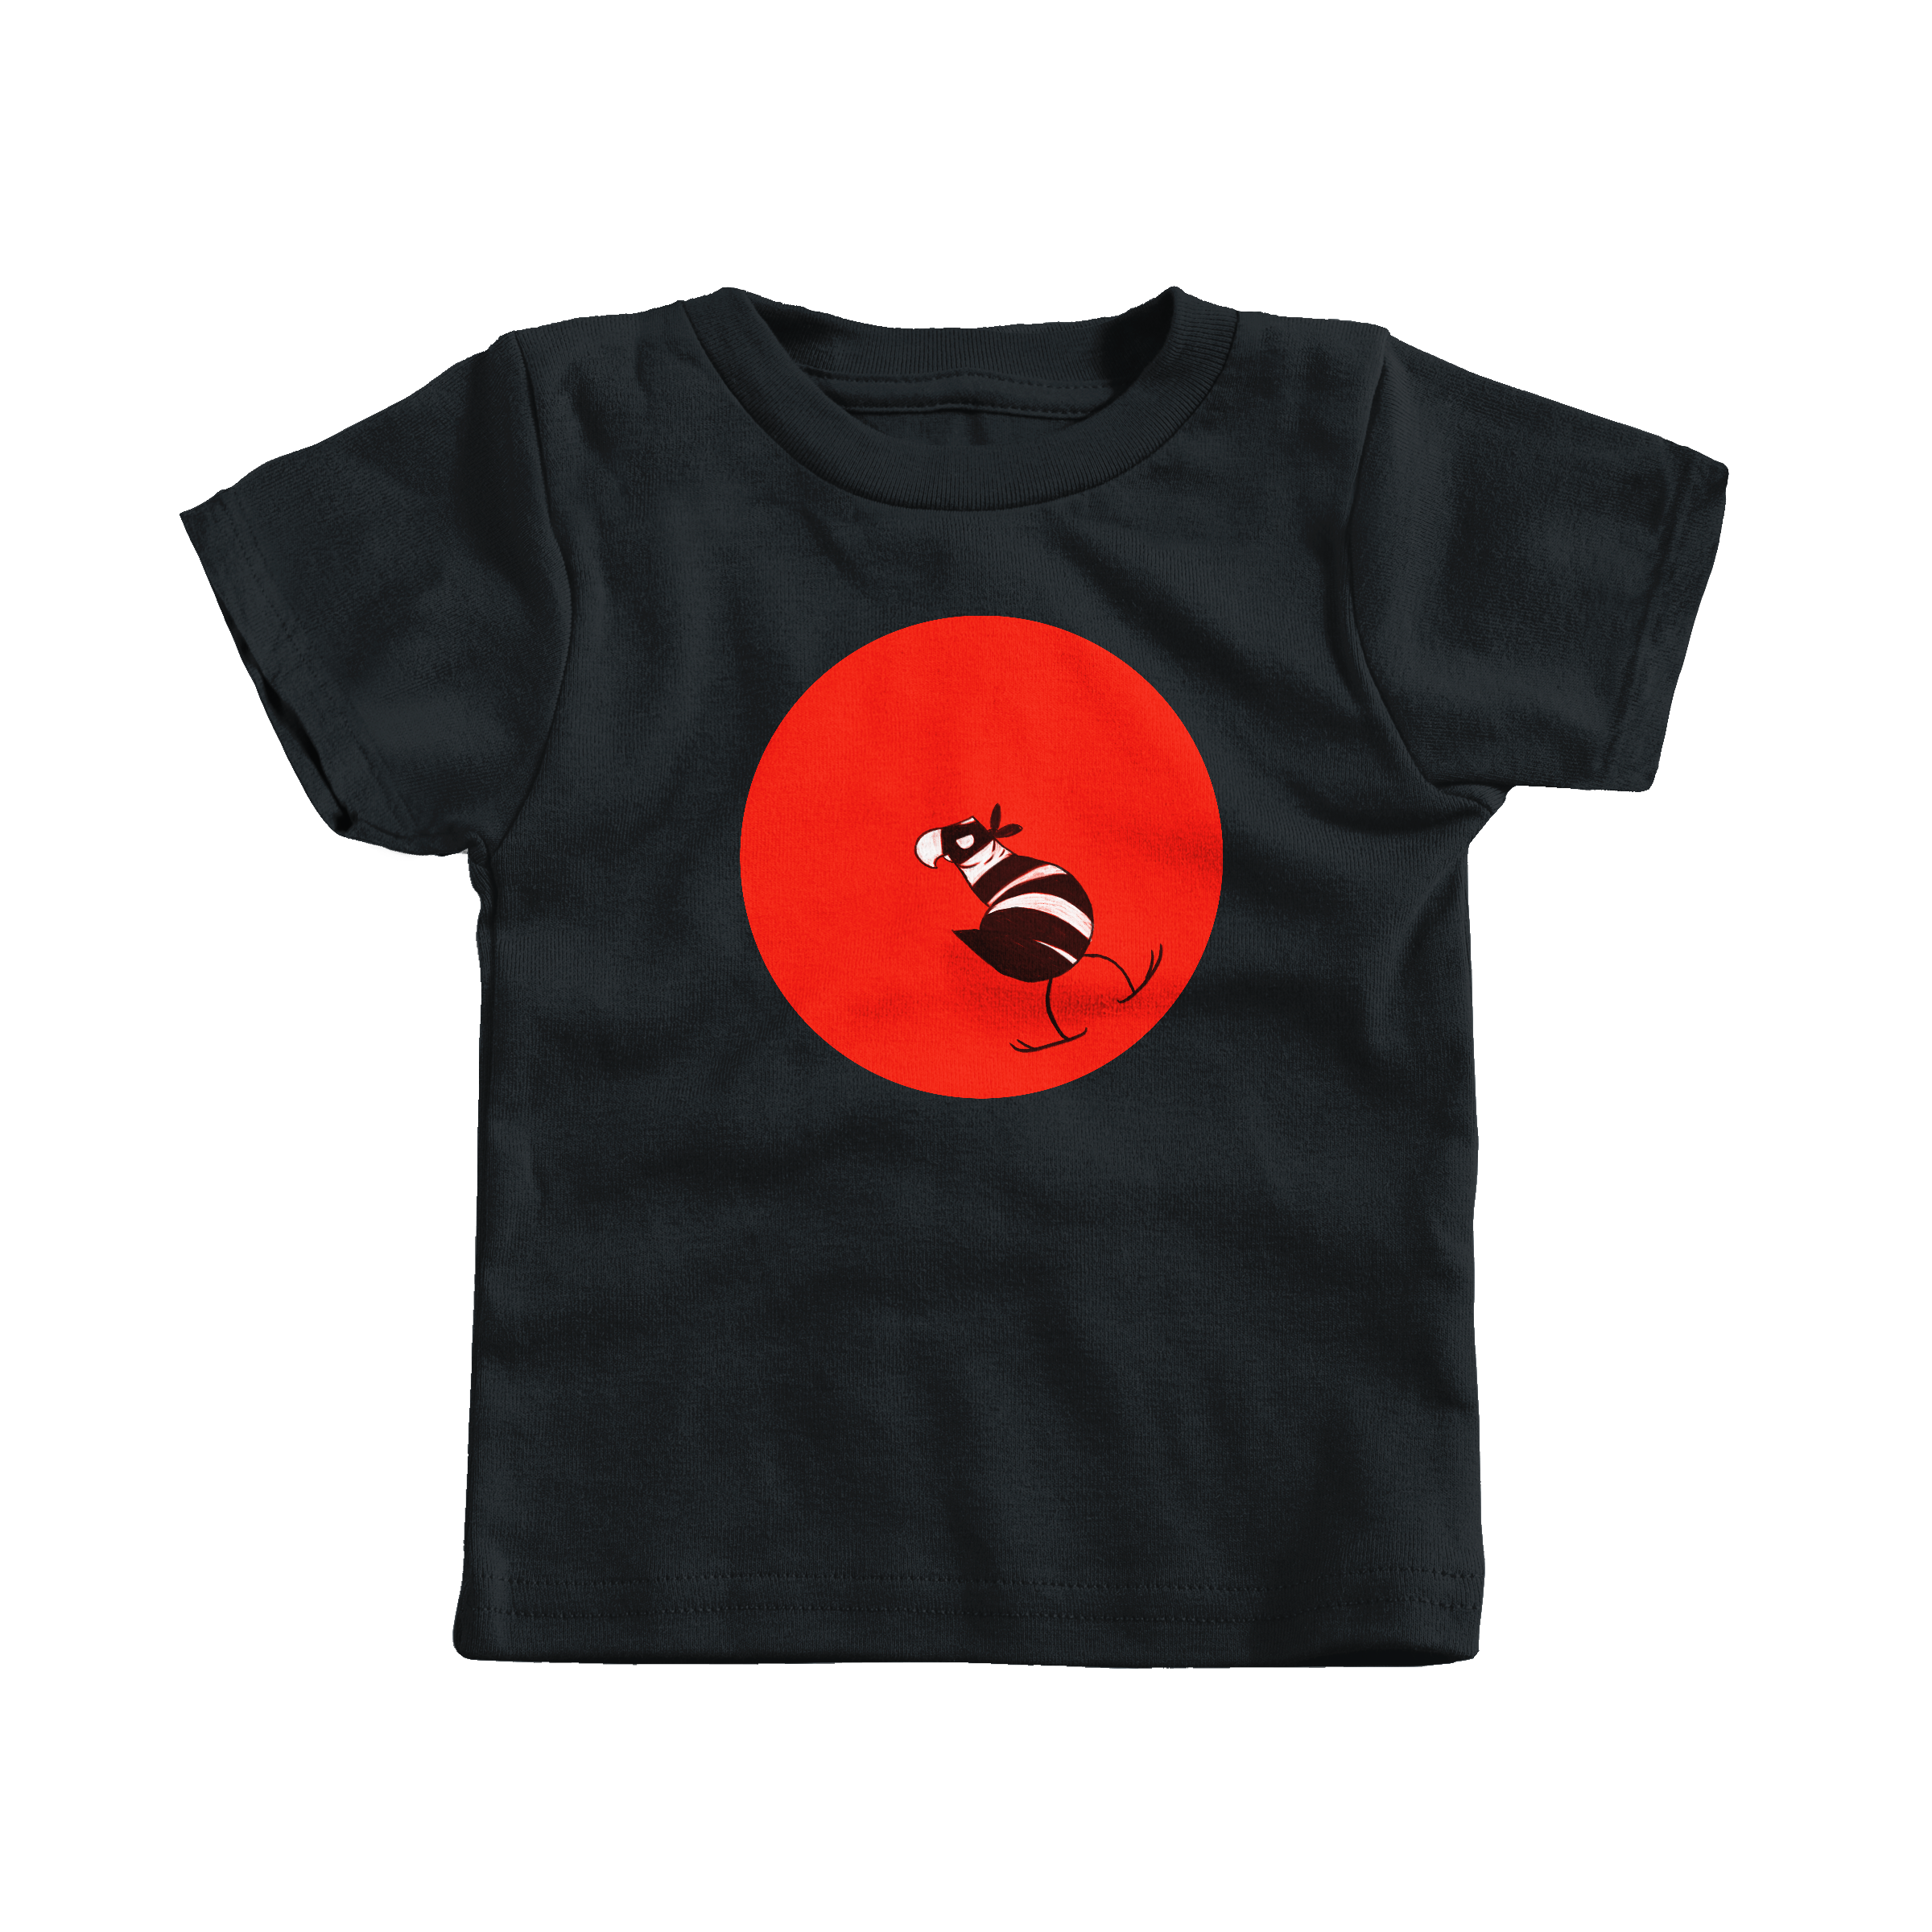 Bandit Bird Black (T-Shirt)